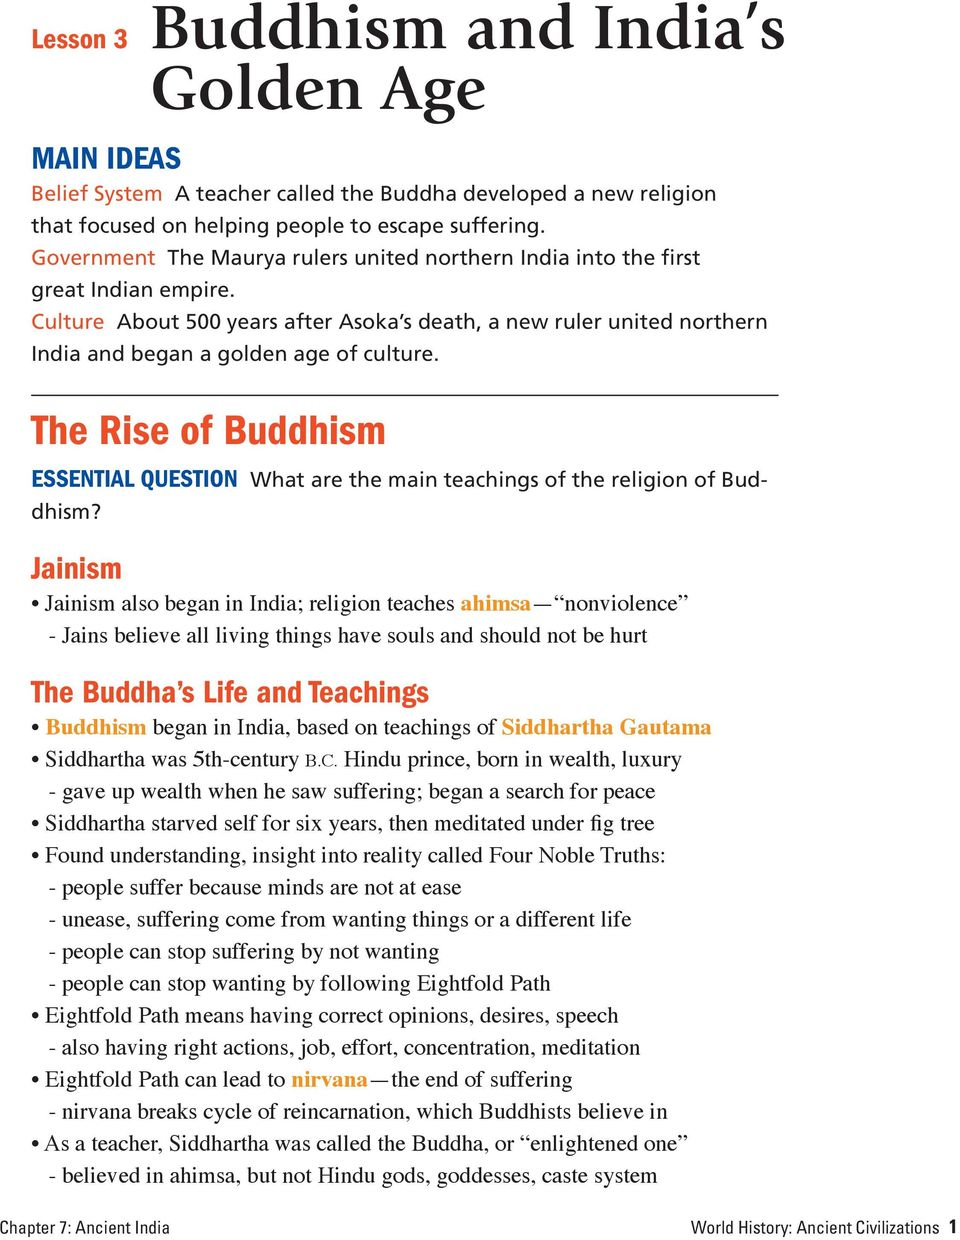 The Rise of Buddhism ESSENTIAL QUESTION What are the main teachings of the religion of Buddhism?